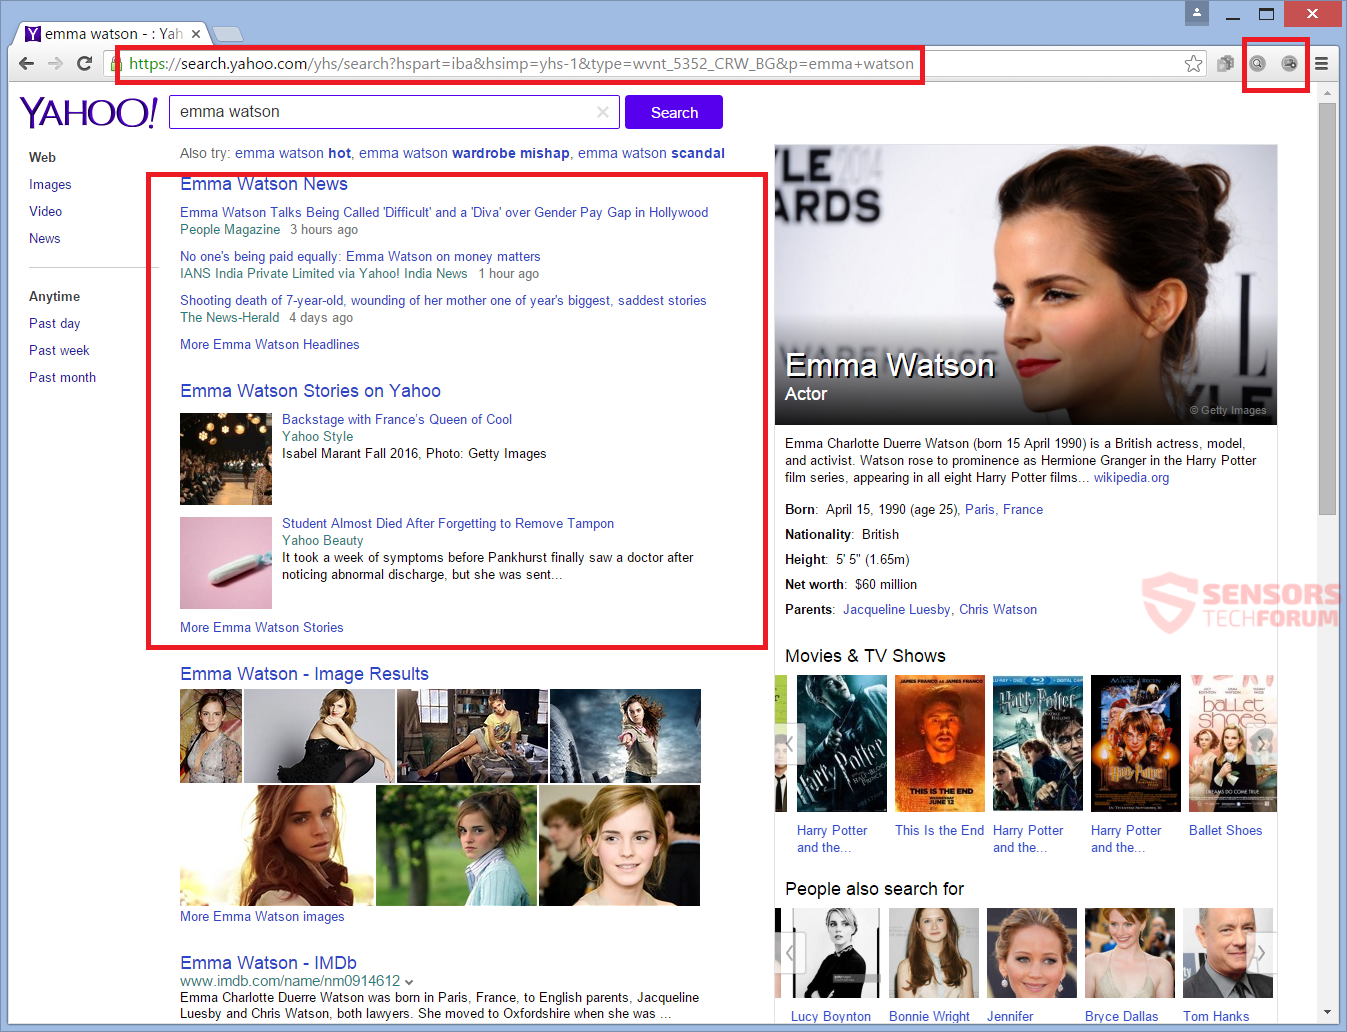 STF-wowmovix-gomovix-com-wow-movix-searchalgo-com-recherche-algo-emma-watson-search-results